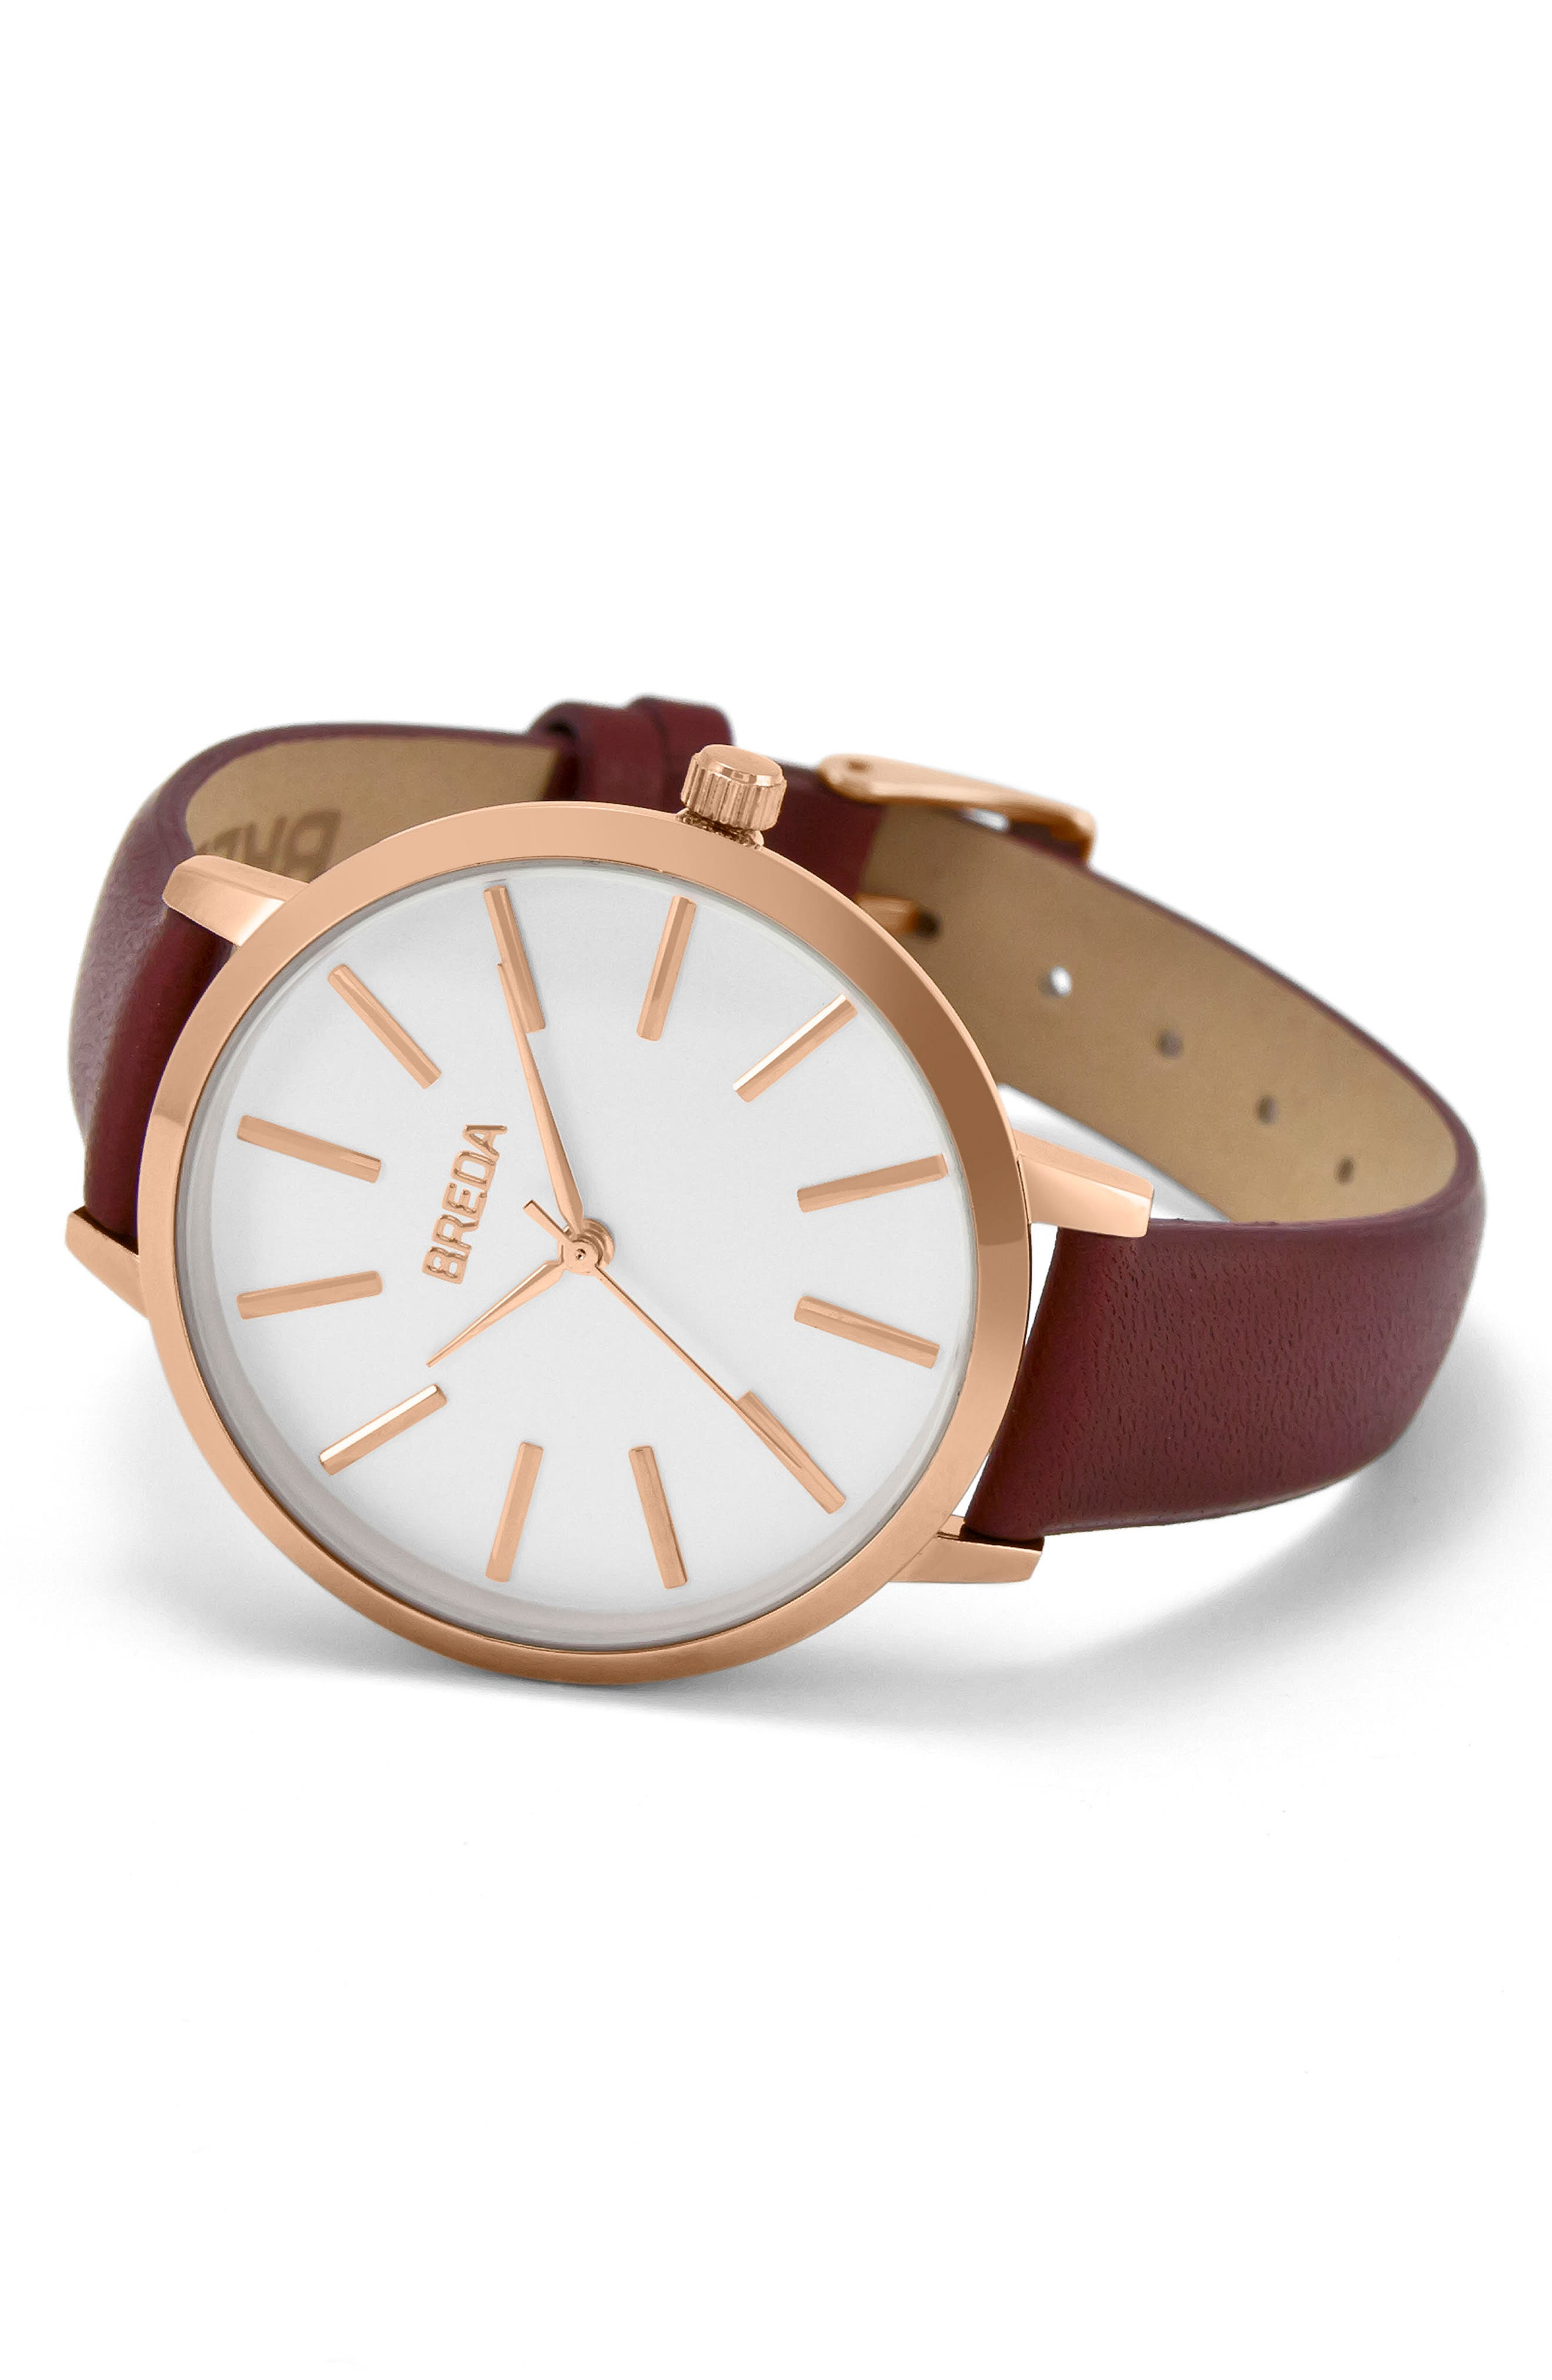 Joule Round Leather Strap Watch, 37mm,                             Alternate thumbnail 13, color,